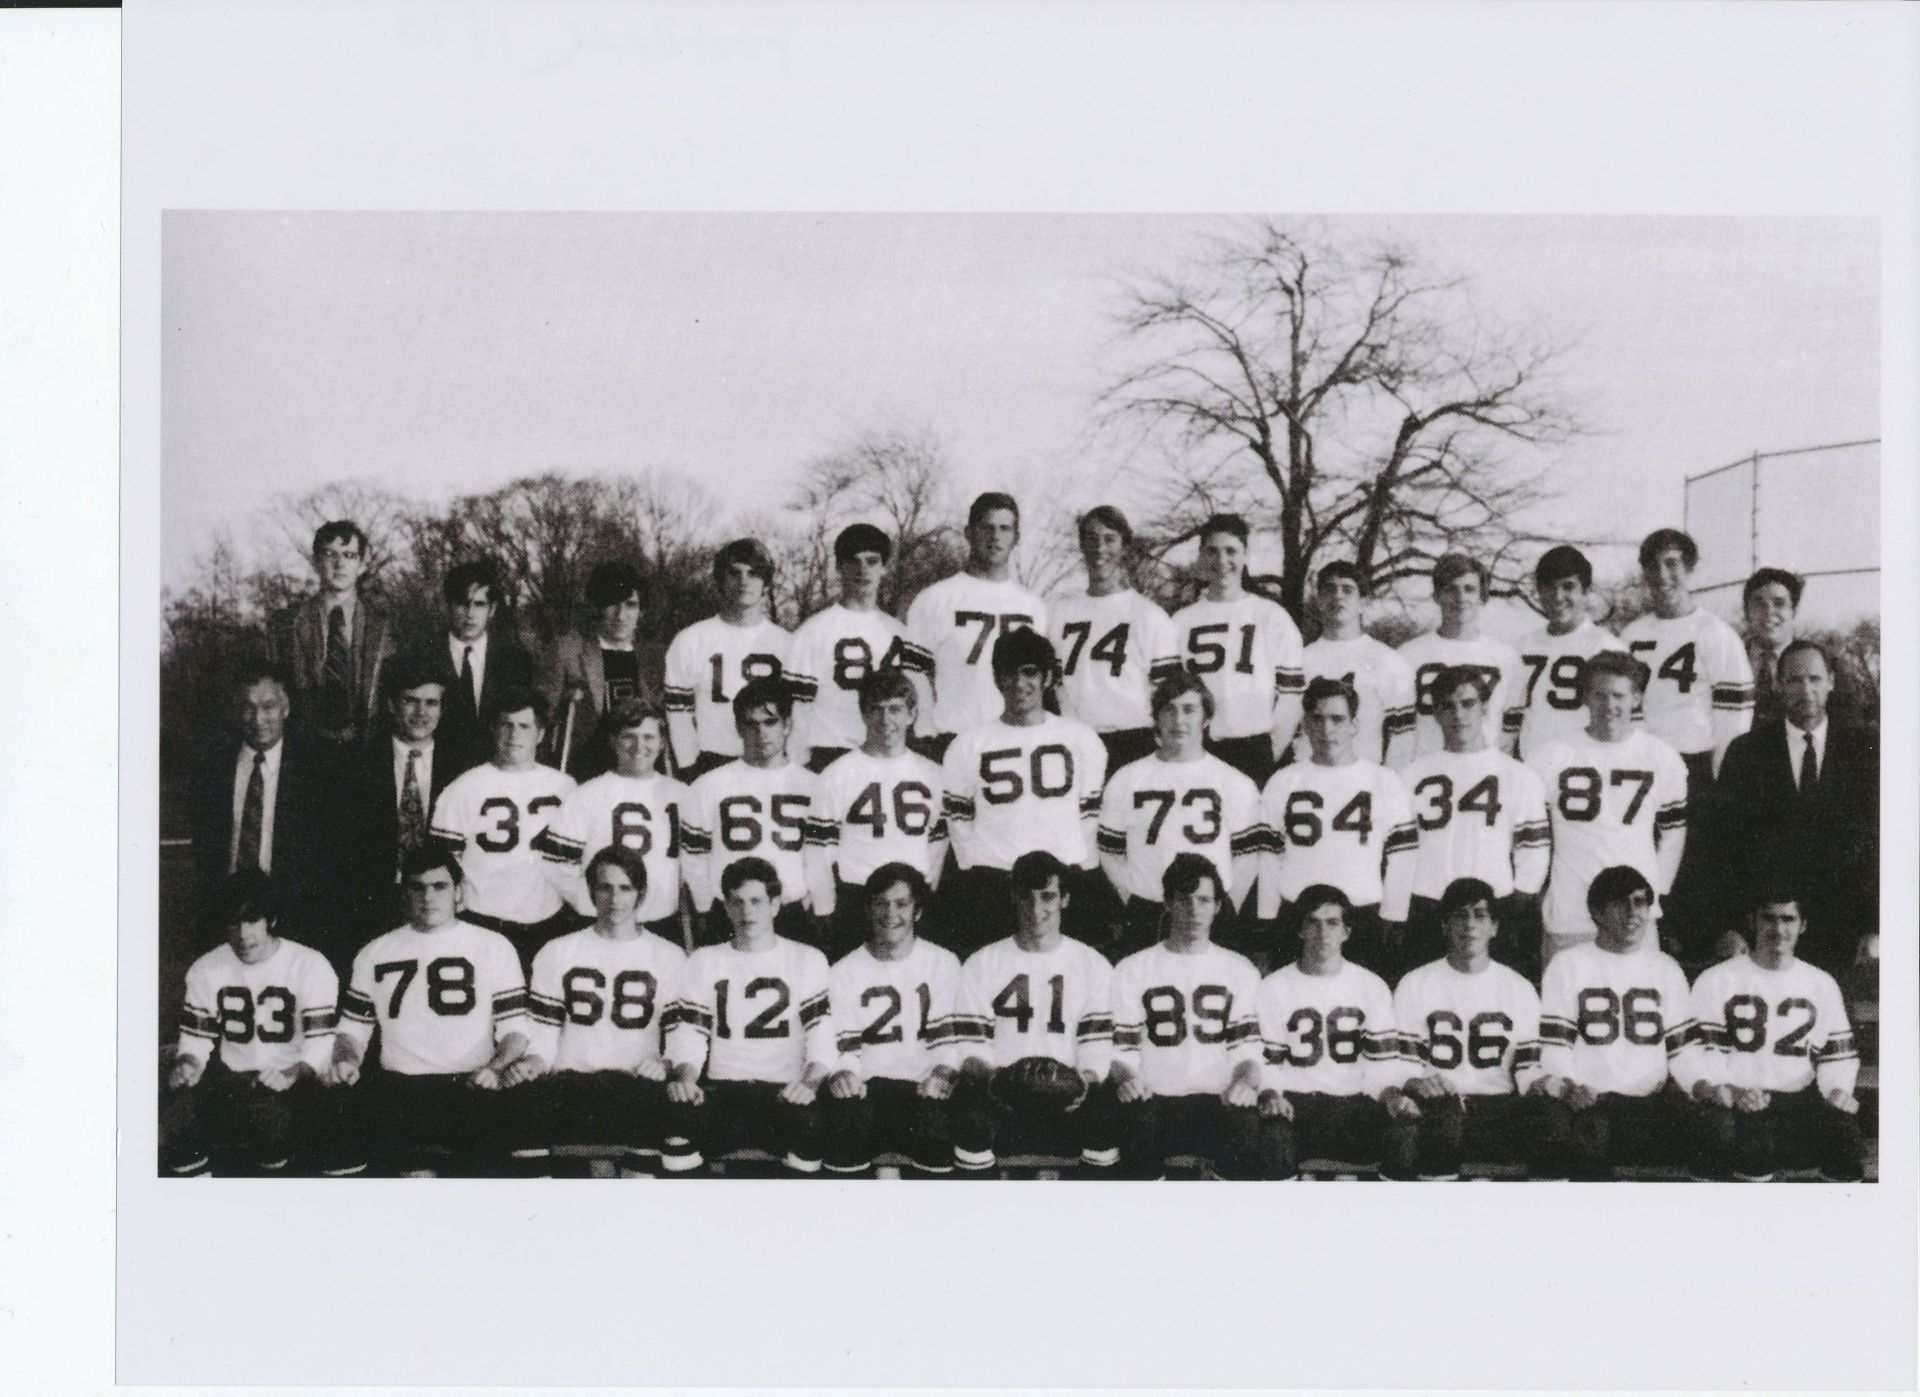 First Row: Ross, Ulfelder, Carr, Macmillan, Fox, Littleton, Thayer, Hunter, Dunn, Lane, MacPherson,Second Row: Mr. Croke, Mr. Wynne, Weeks, Ellis, Johnson, Kittredge, Dorian, Harrison, St. Clair, Bankart, Samuelson, Mr. FisherThird Row; Walworth, Amsbary, D. Kay, Pettit, Rutter, Magnuson, Wood, O., Fisher, Hogan, Moore, Joyal, Wood, E., Amsbary, B.